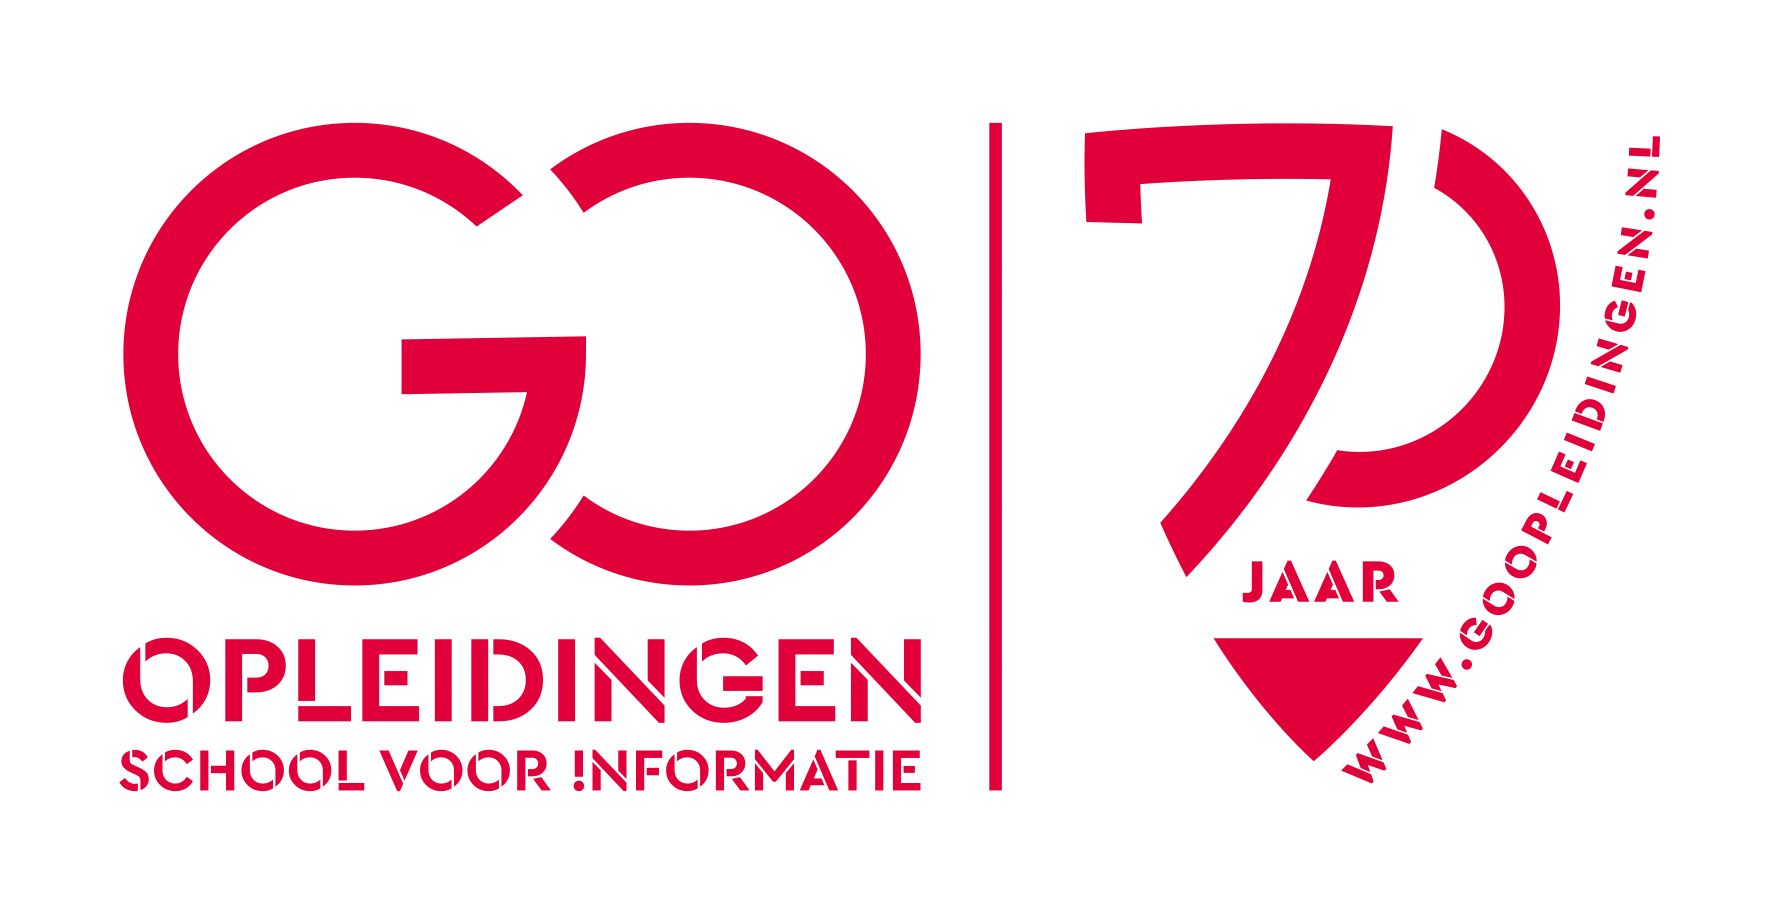 Go70-logo_Lock-up_NED_RGB.jpg